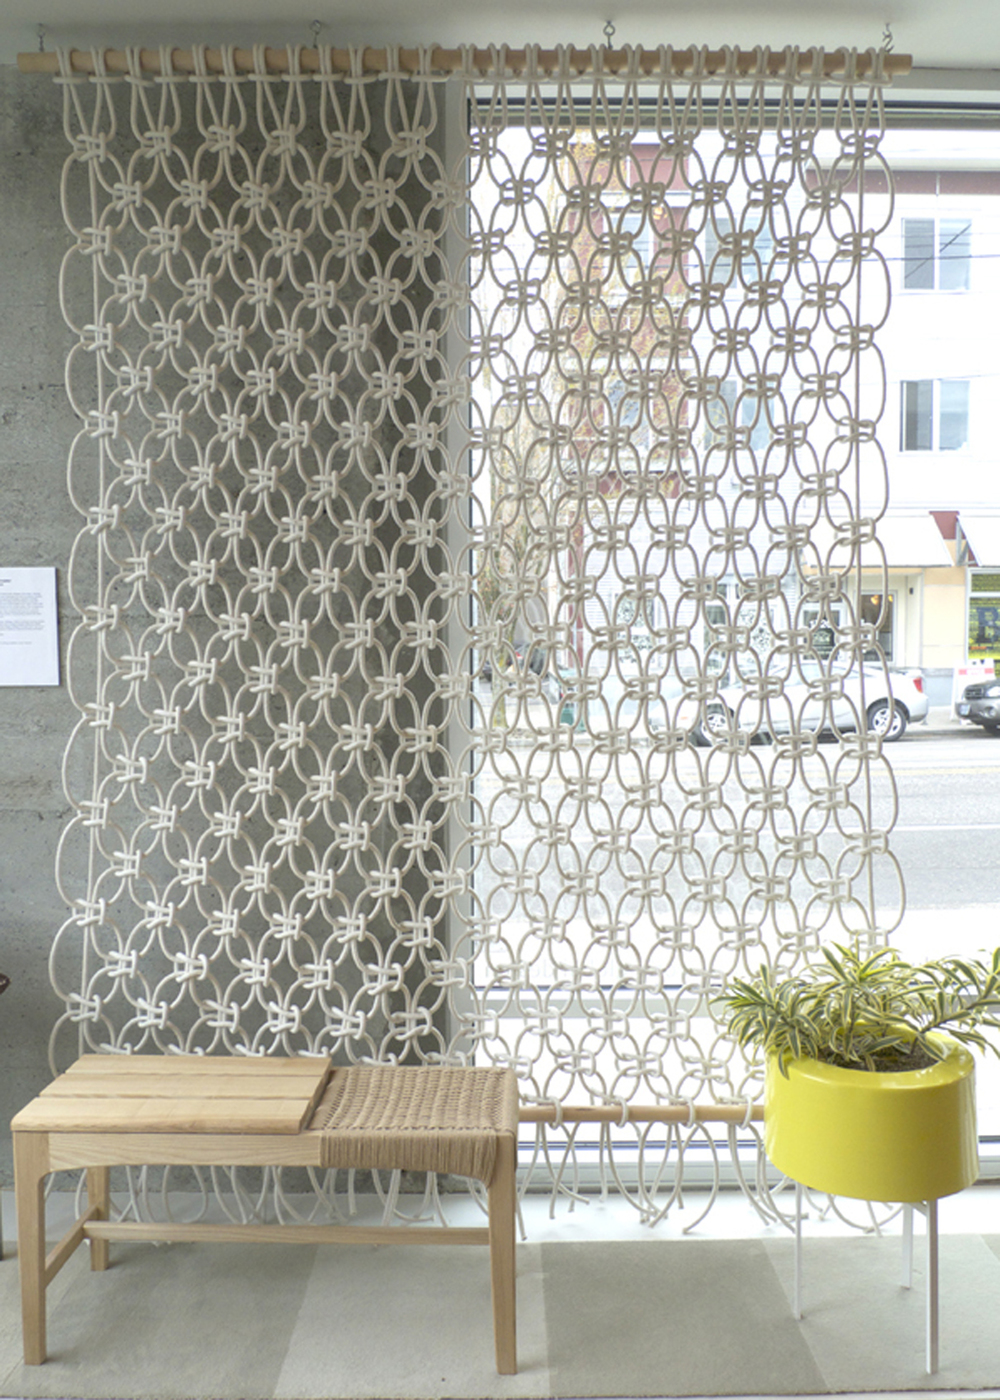 7' x 6'. Cotton Rope. 2011.  Room divider created during first year of graduate school and later exhibited at the shops Golden Rule, and Relish, in Portland, Oregon.